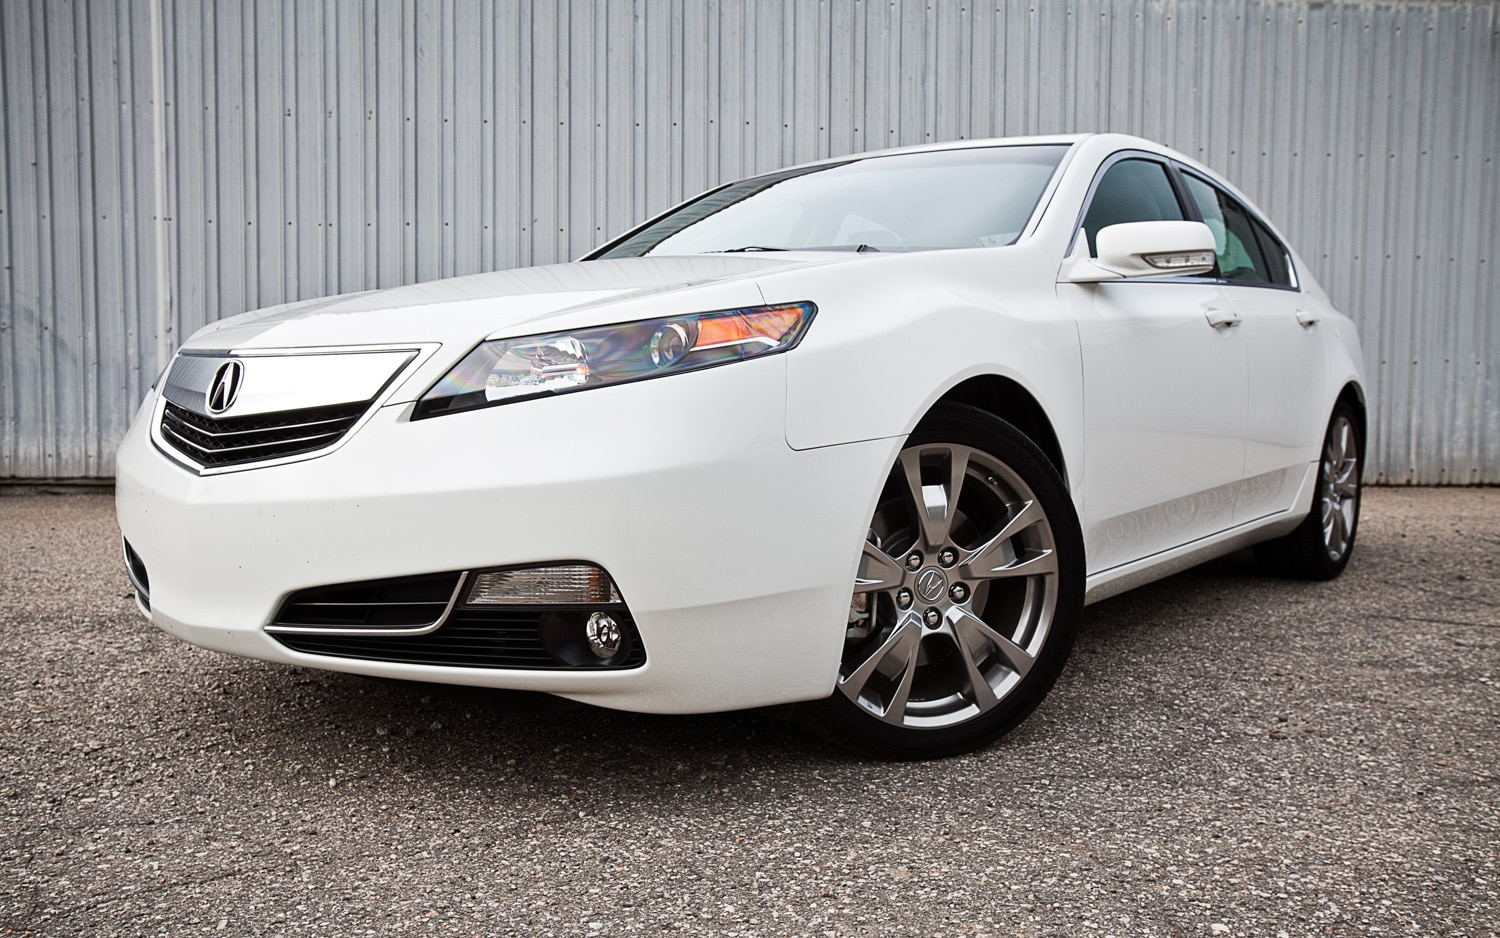 2012 Acura Tl Sh Awd Advance Front Left Side View1